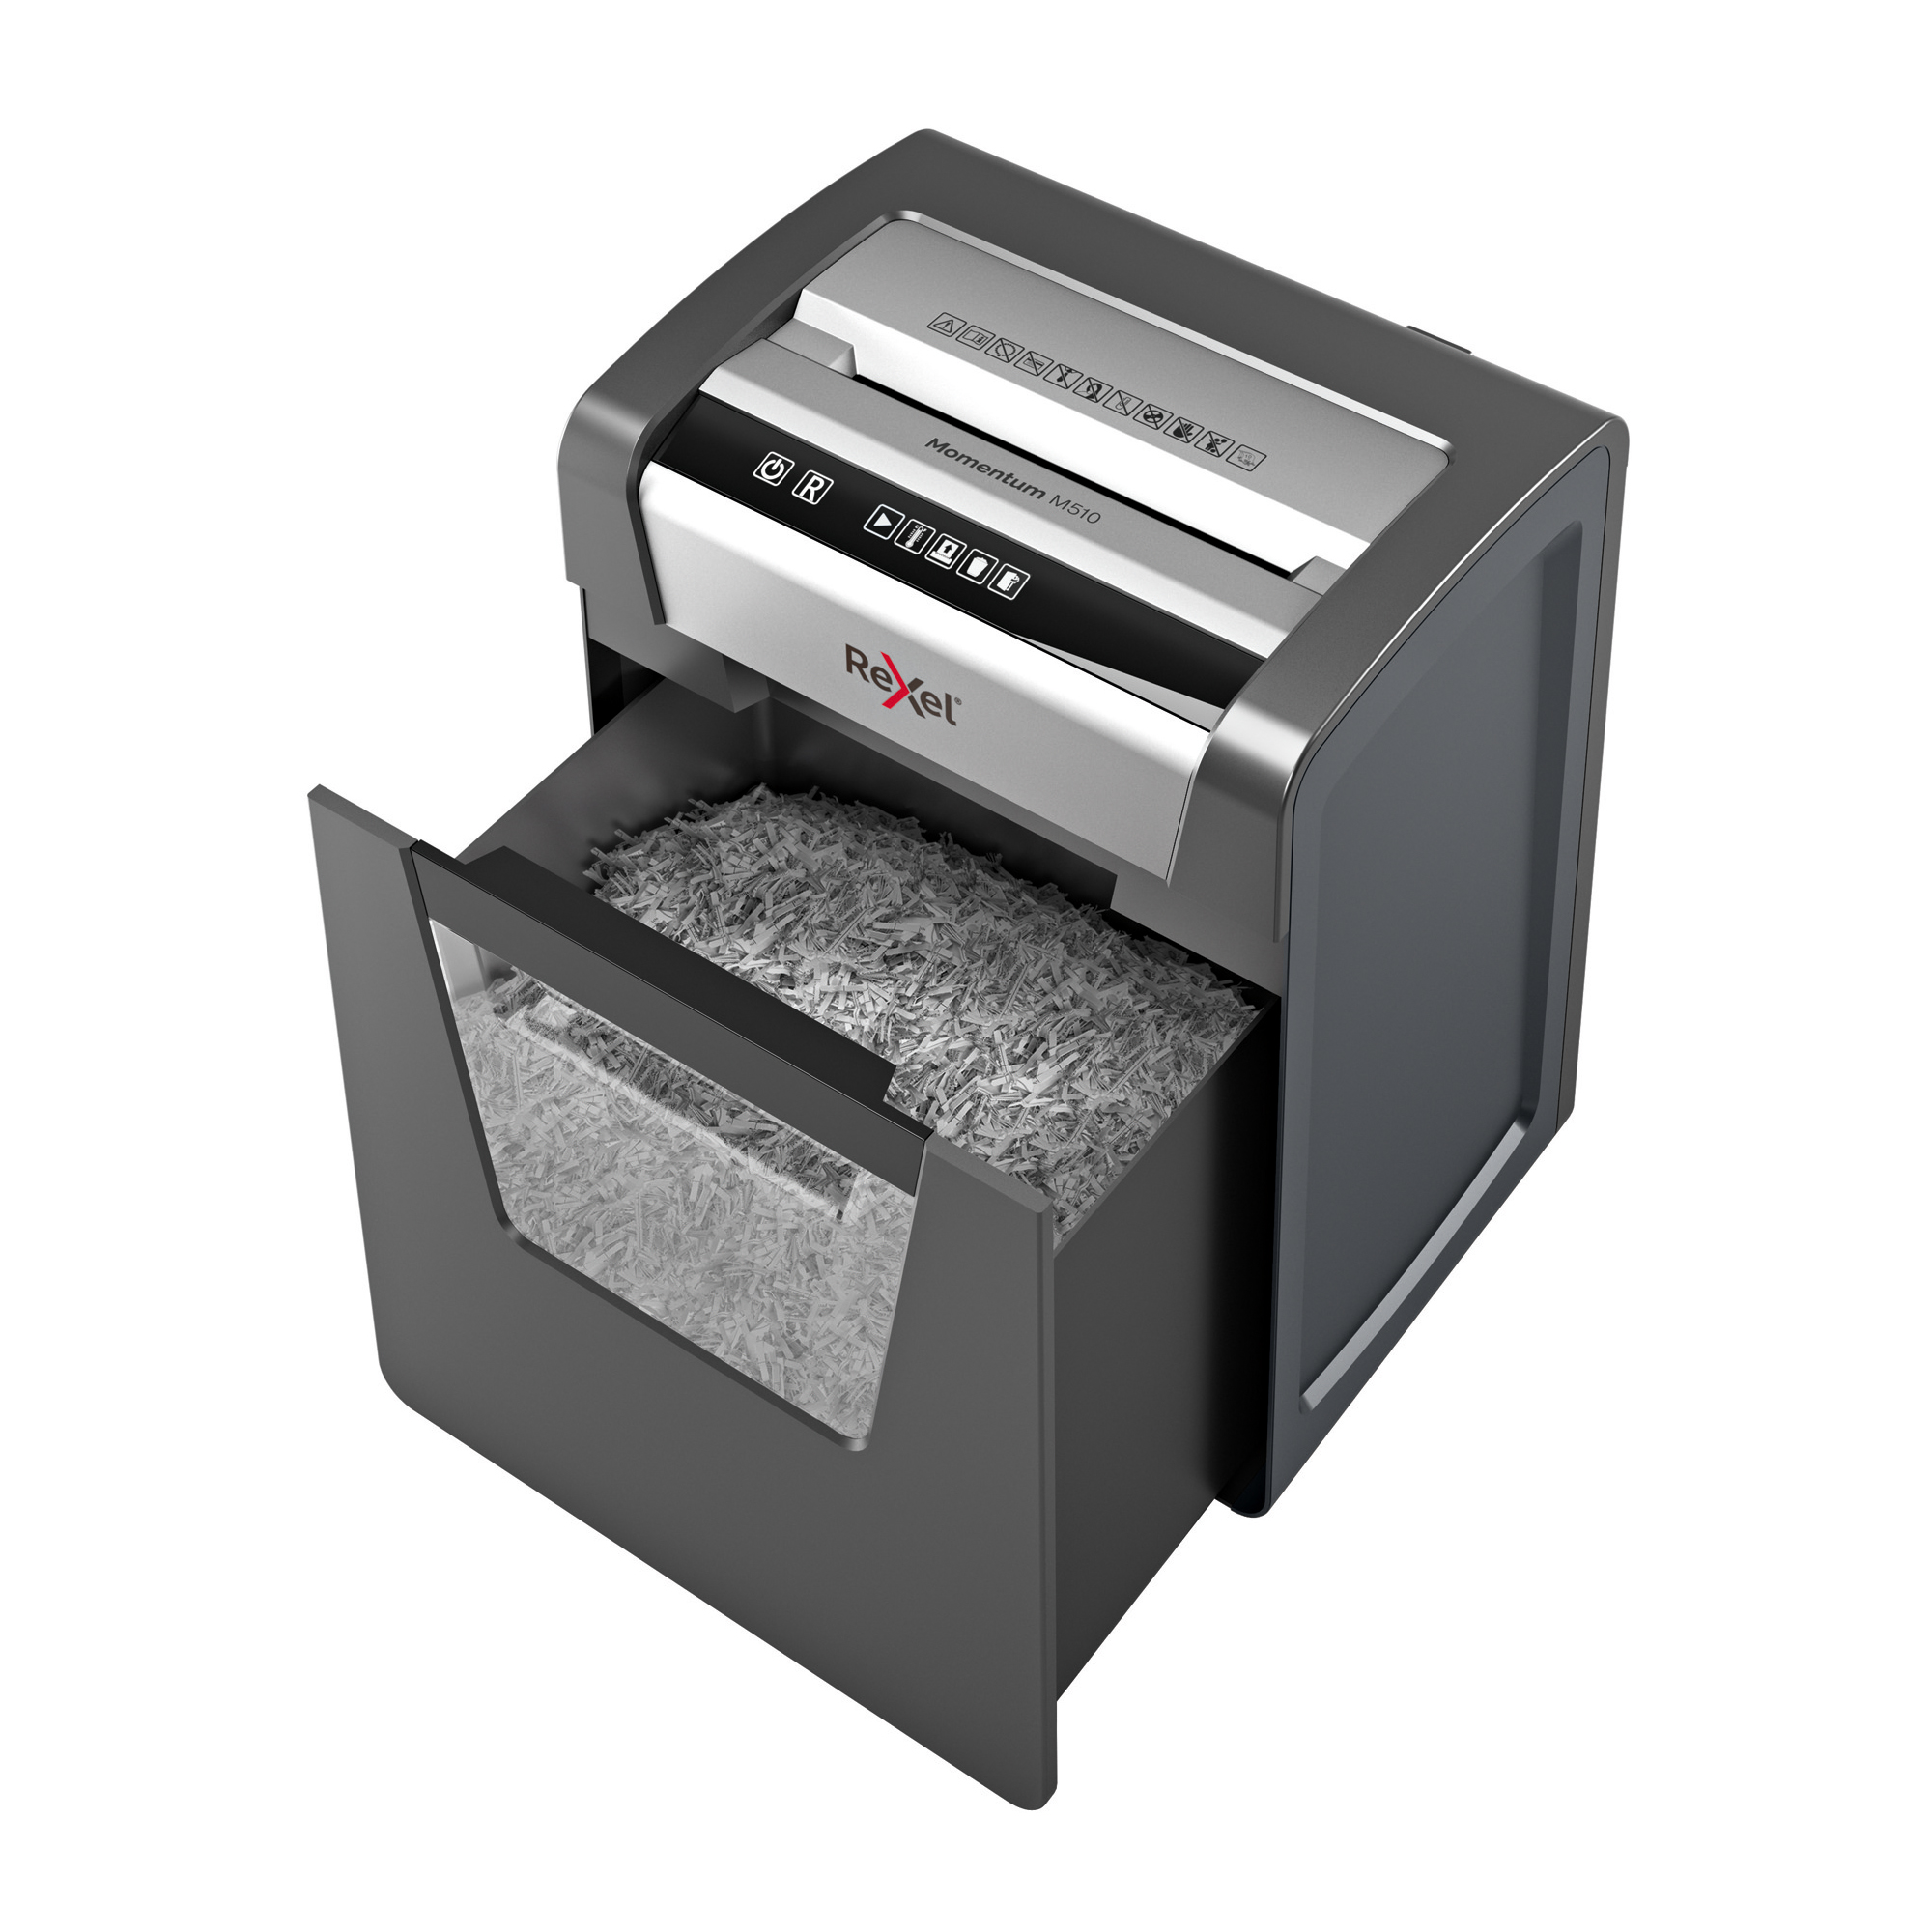 Rexel Momentum M510 Shredder 2x15mm Micro Cut P-5 2104575 Ref 2104575 [REDEMPTION] Jul-Sep19